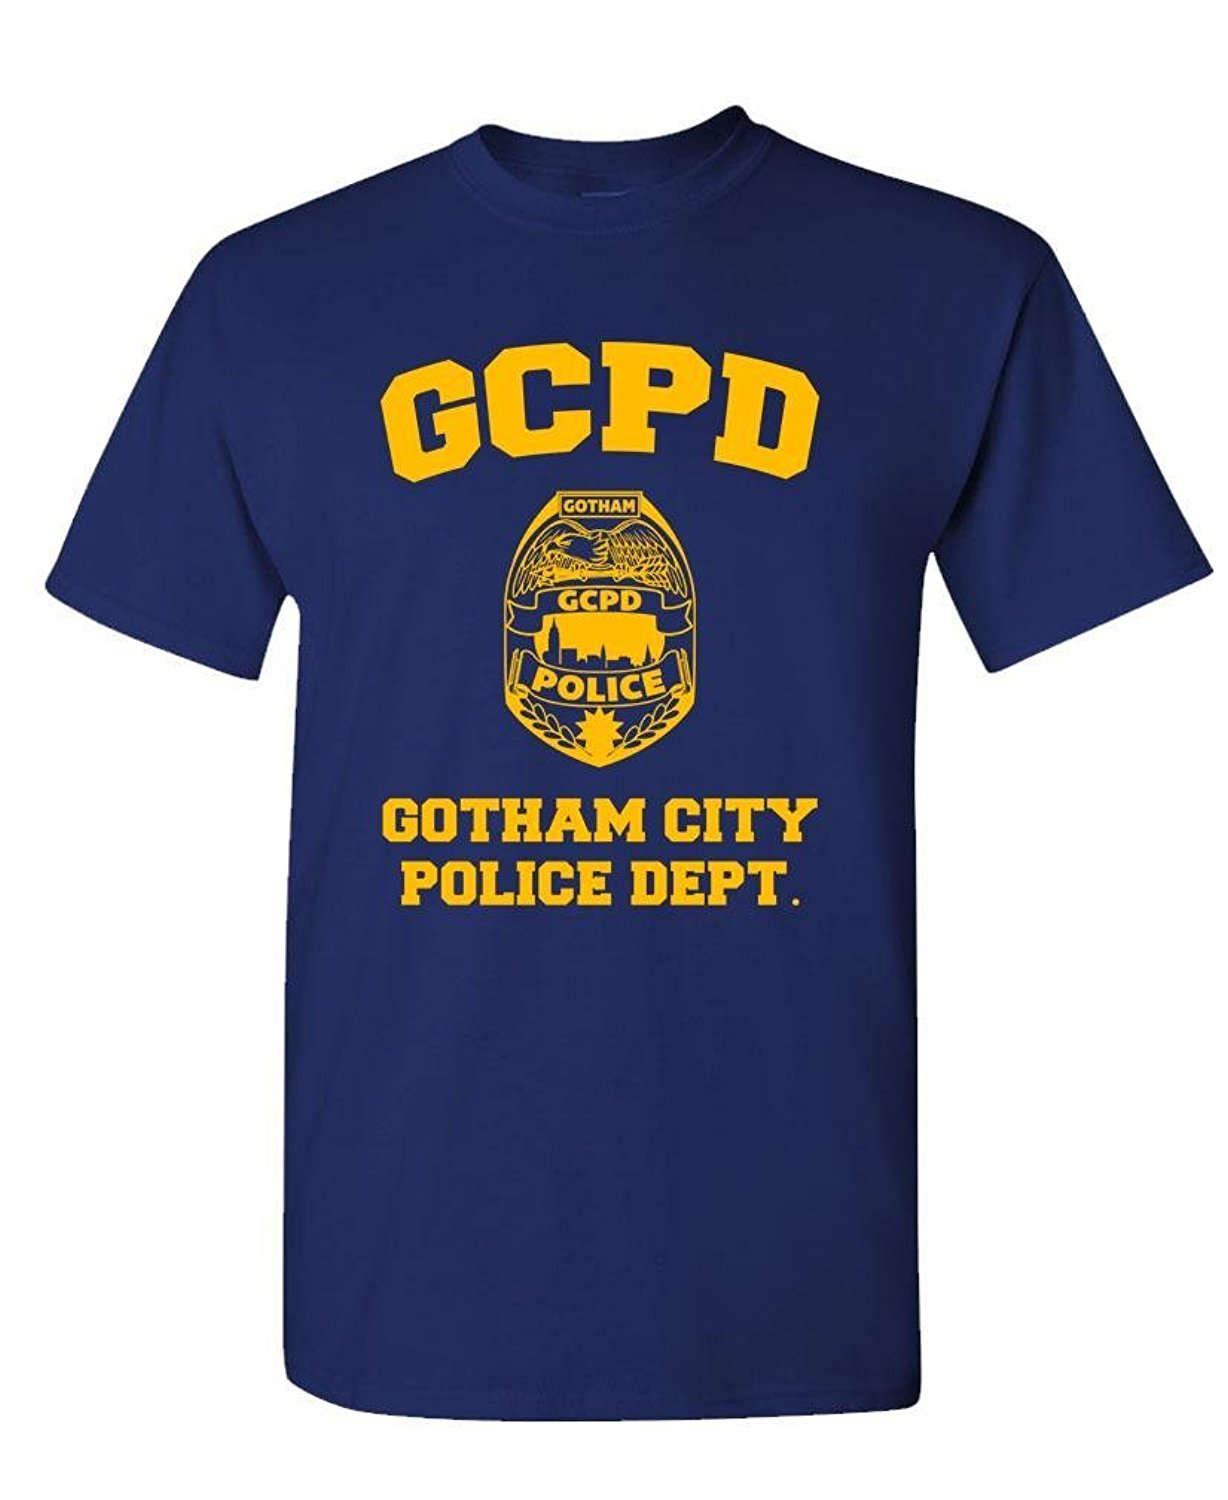 Men 2019 Brand Clothing Tees Casual Designing T Shirt Gcpd Gotham City Police Dept - Arkham Game - Mens Screen Printing T Shirts image